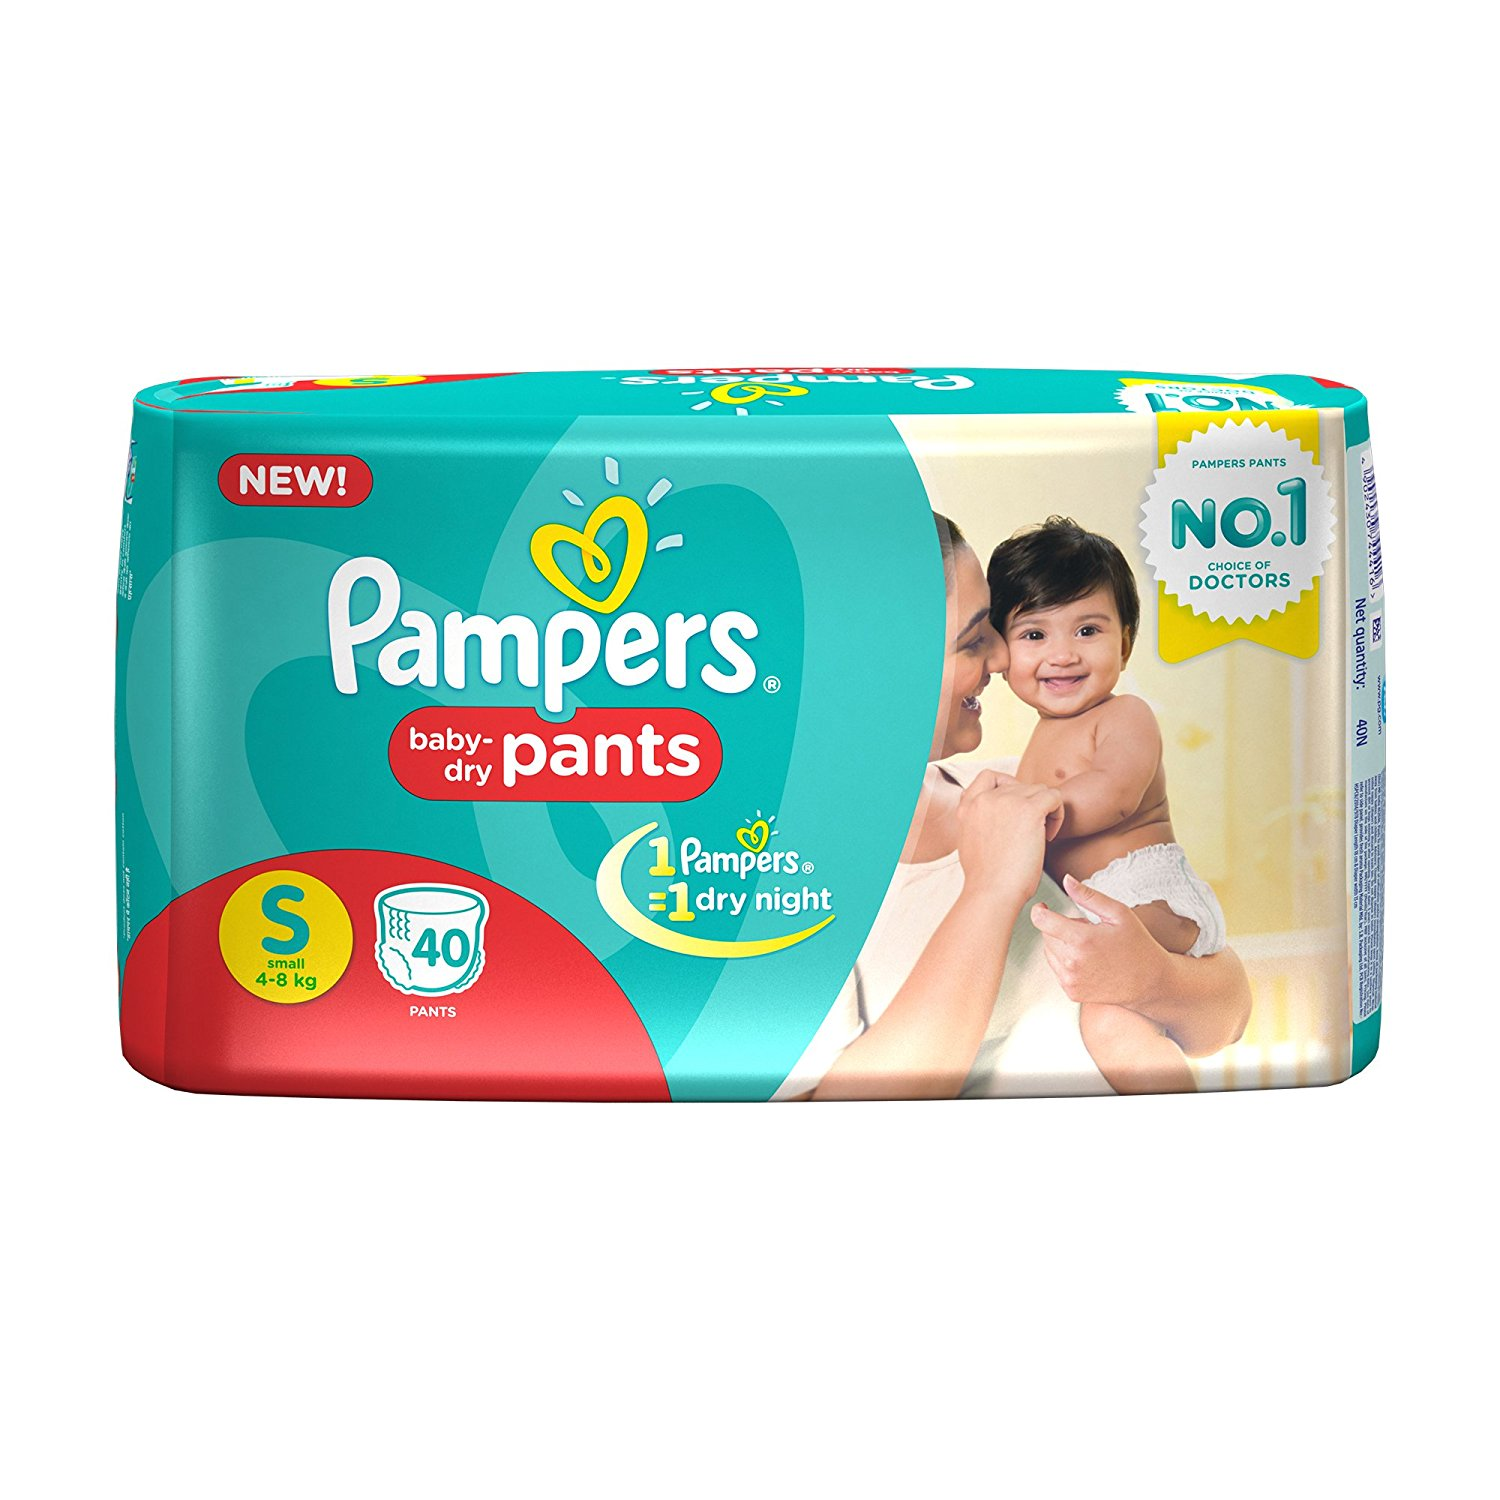 Pampers Pant S Diapers (40 Pieces)